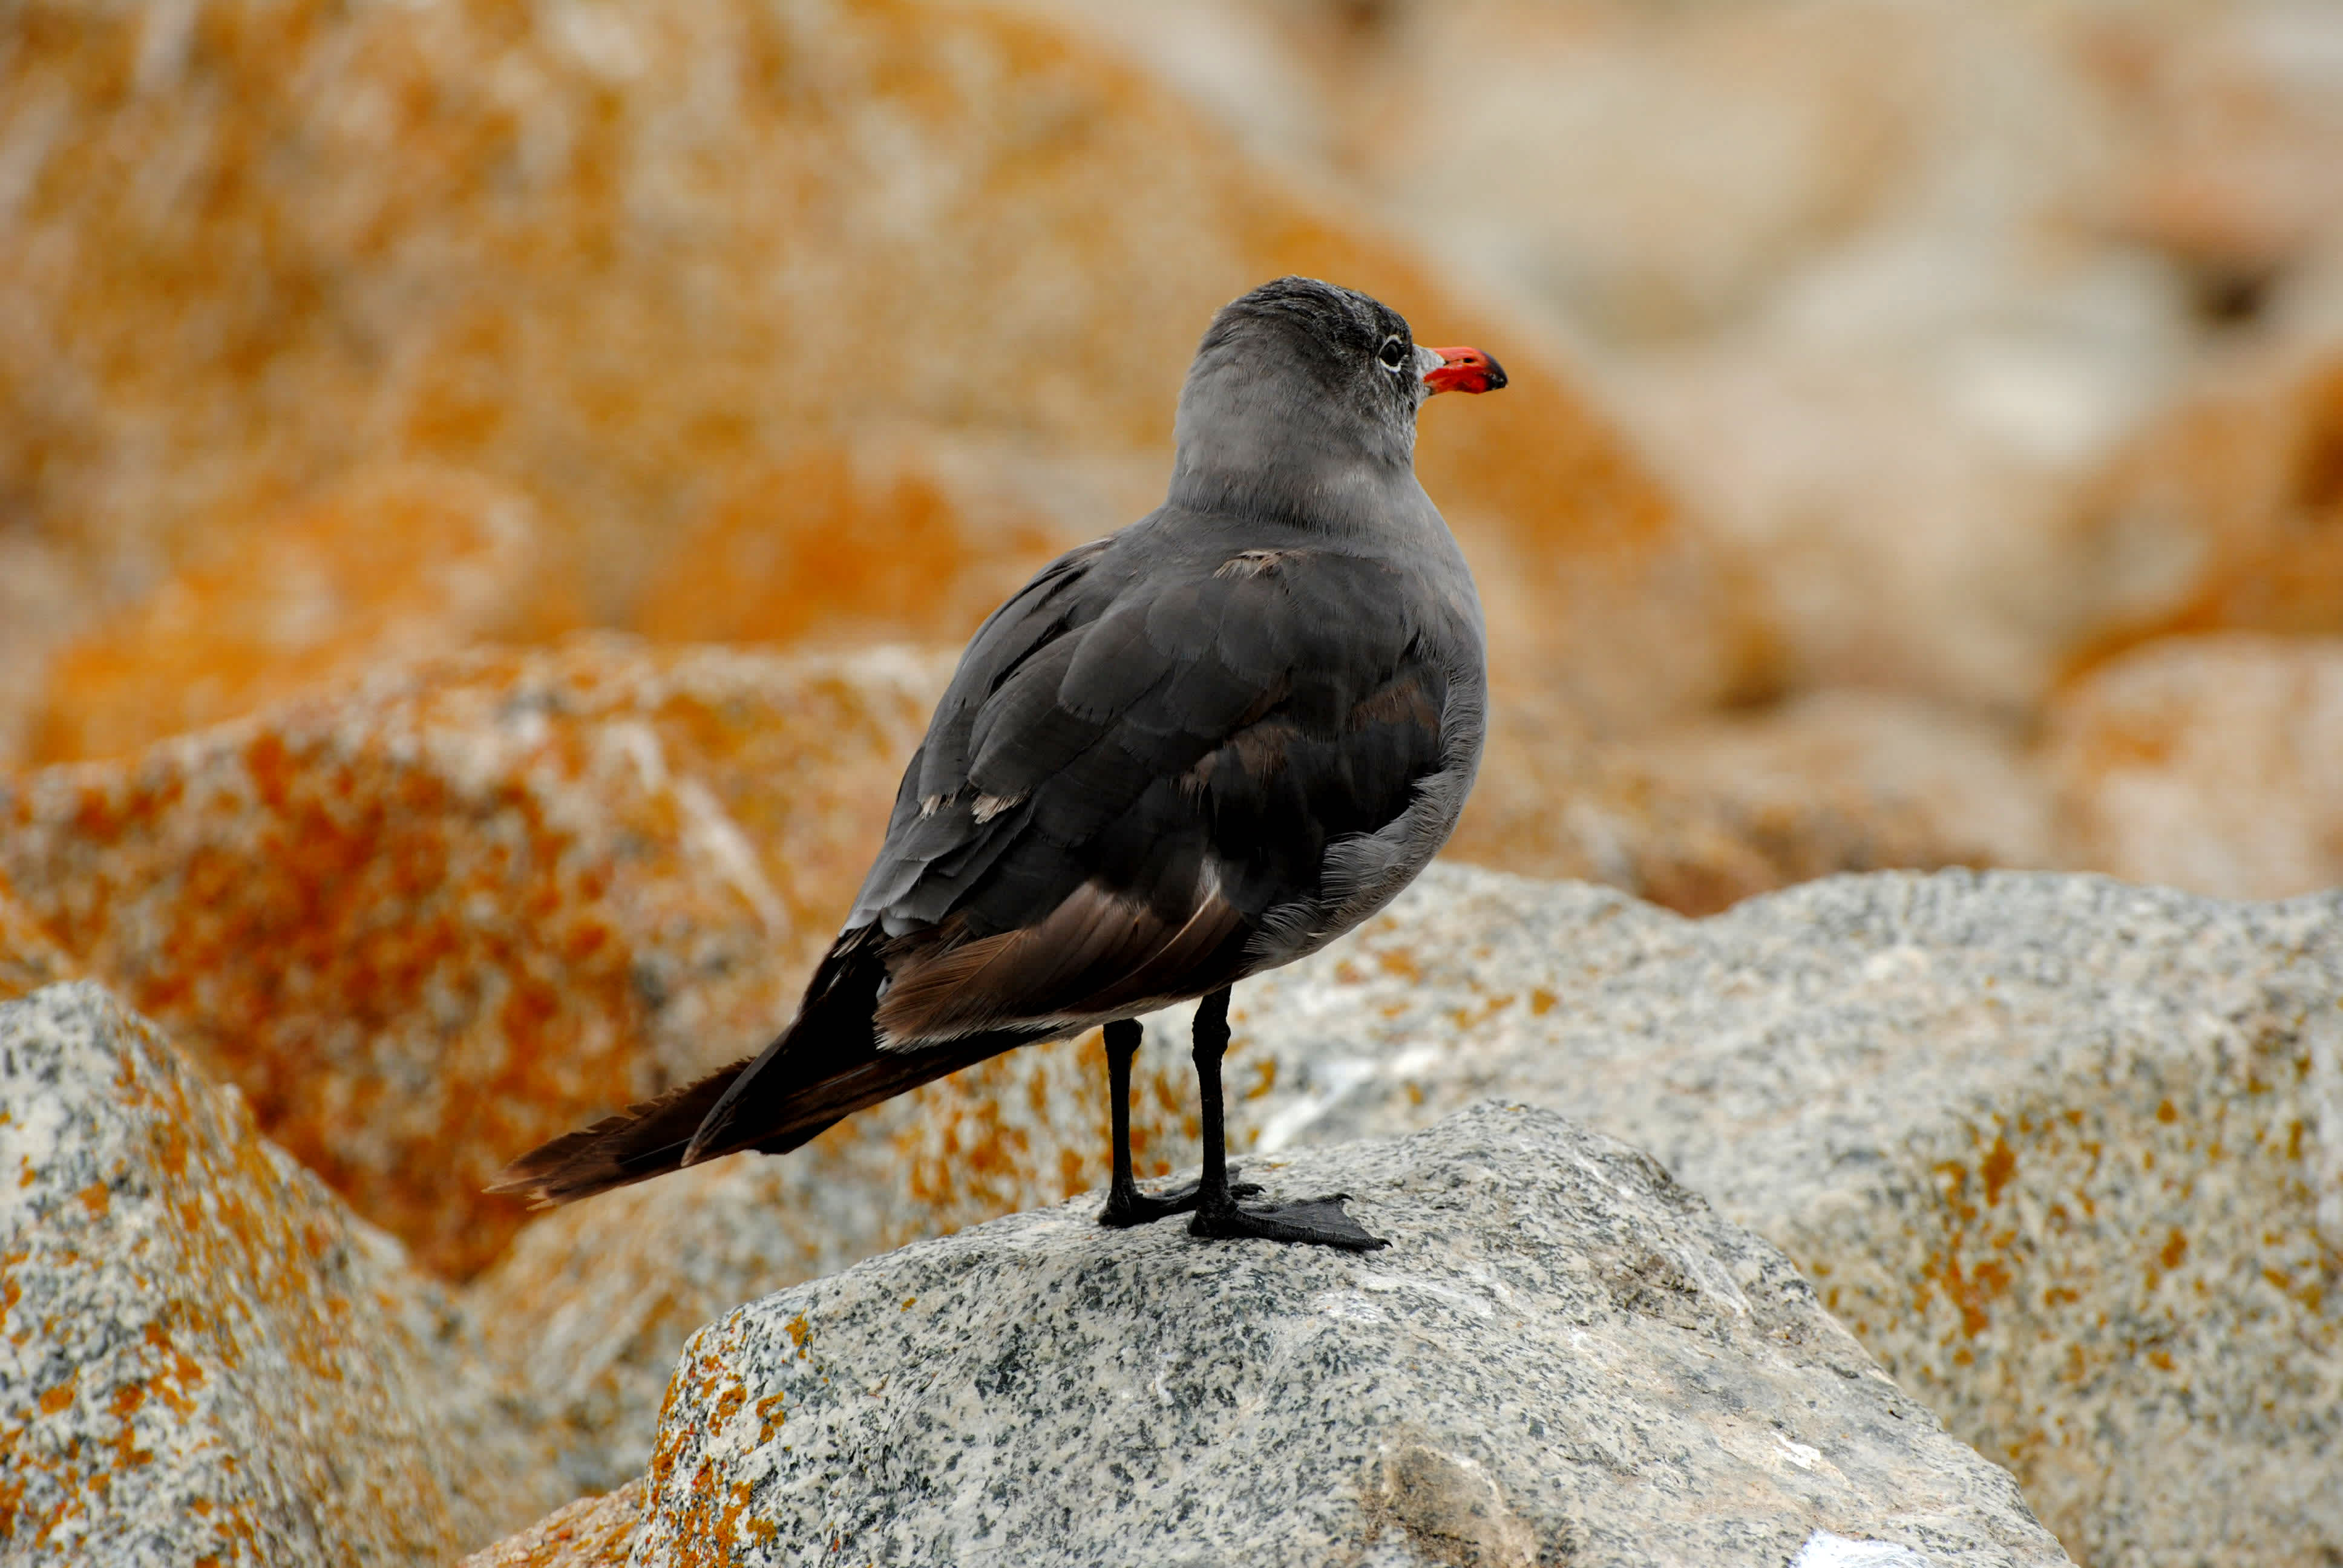 Bird standing on a rock.